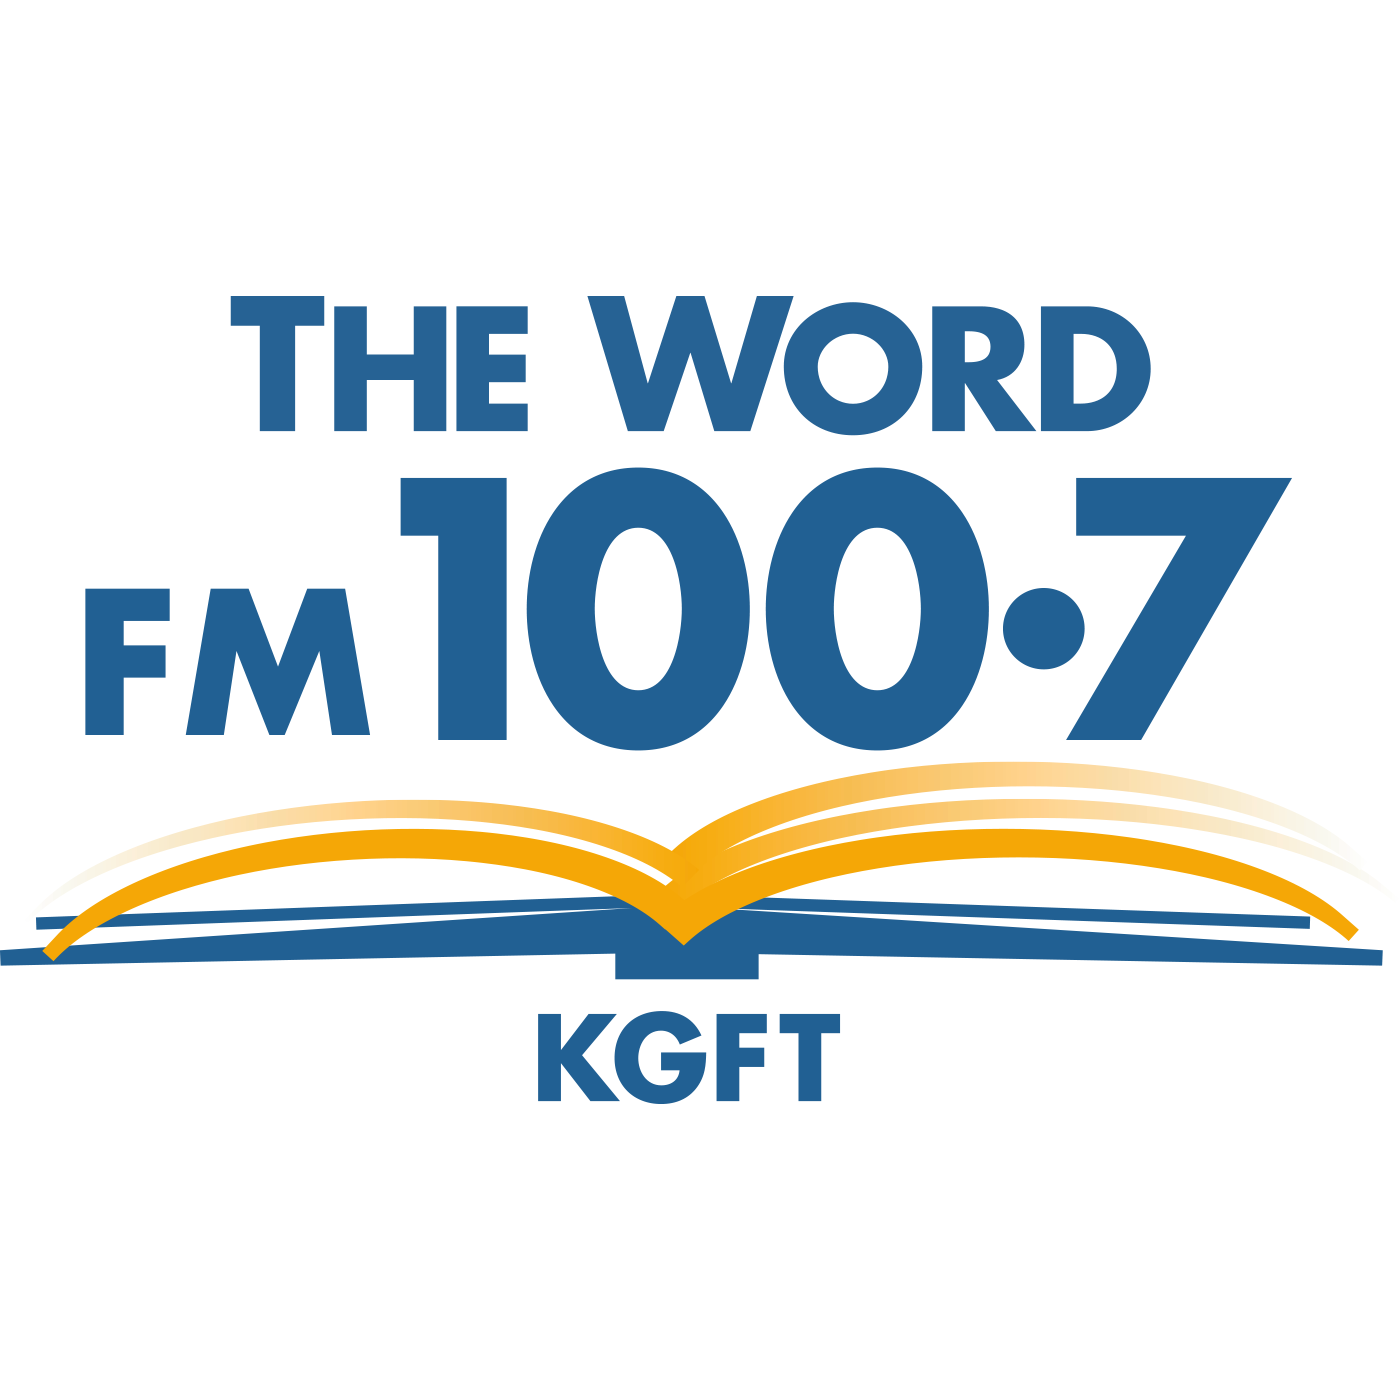 The Word FM 100.7 KGFT